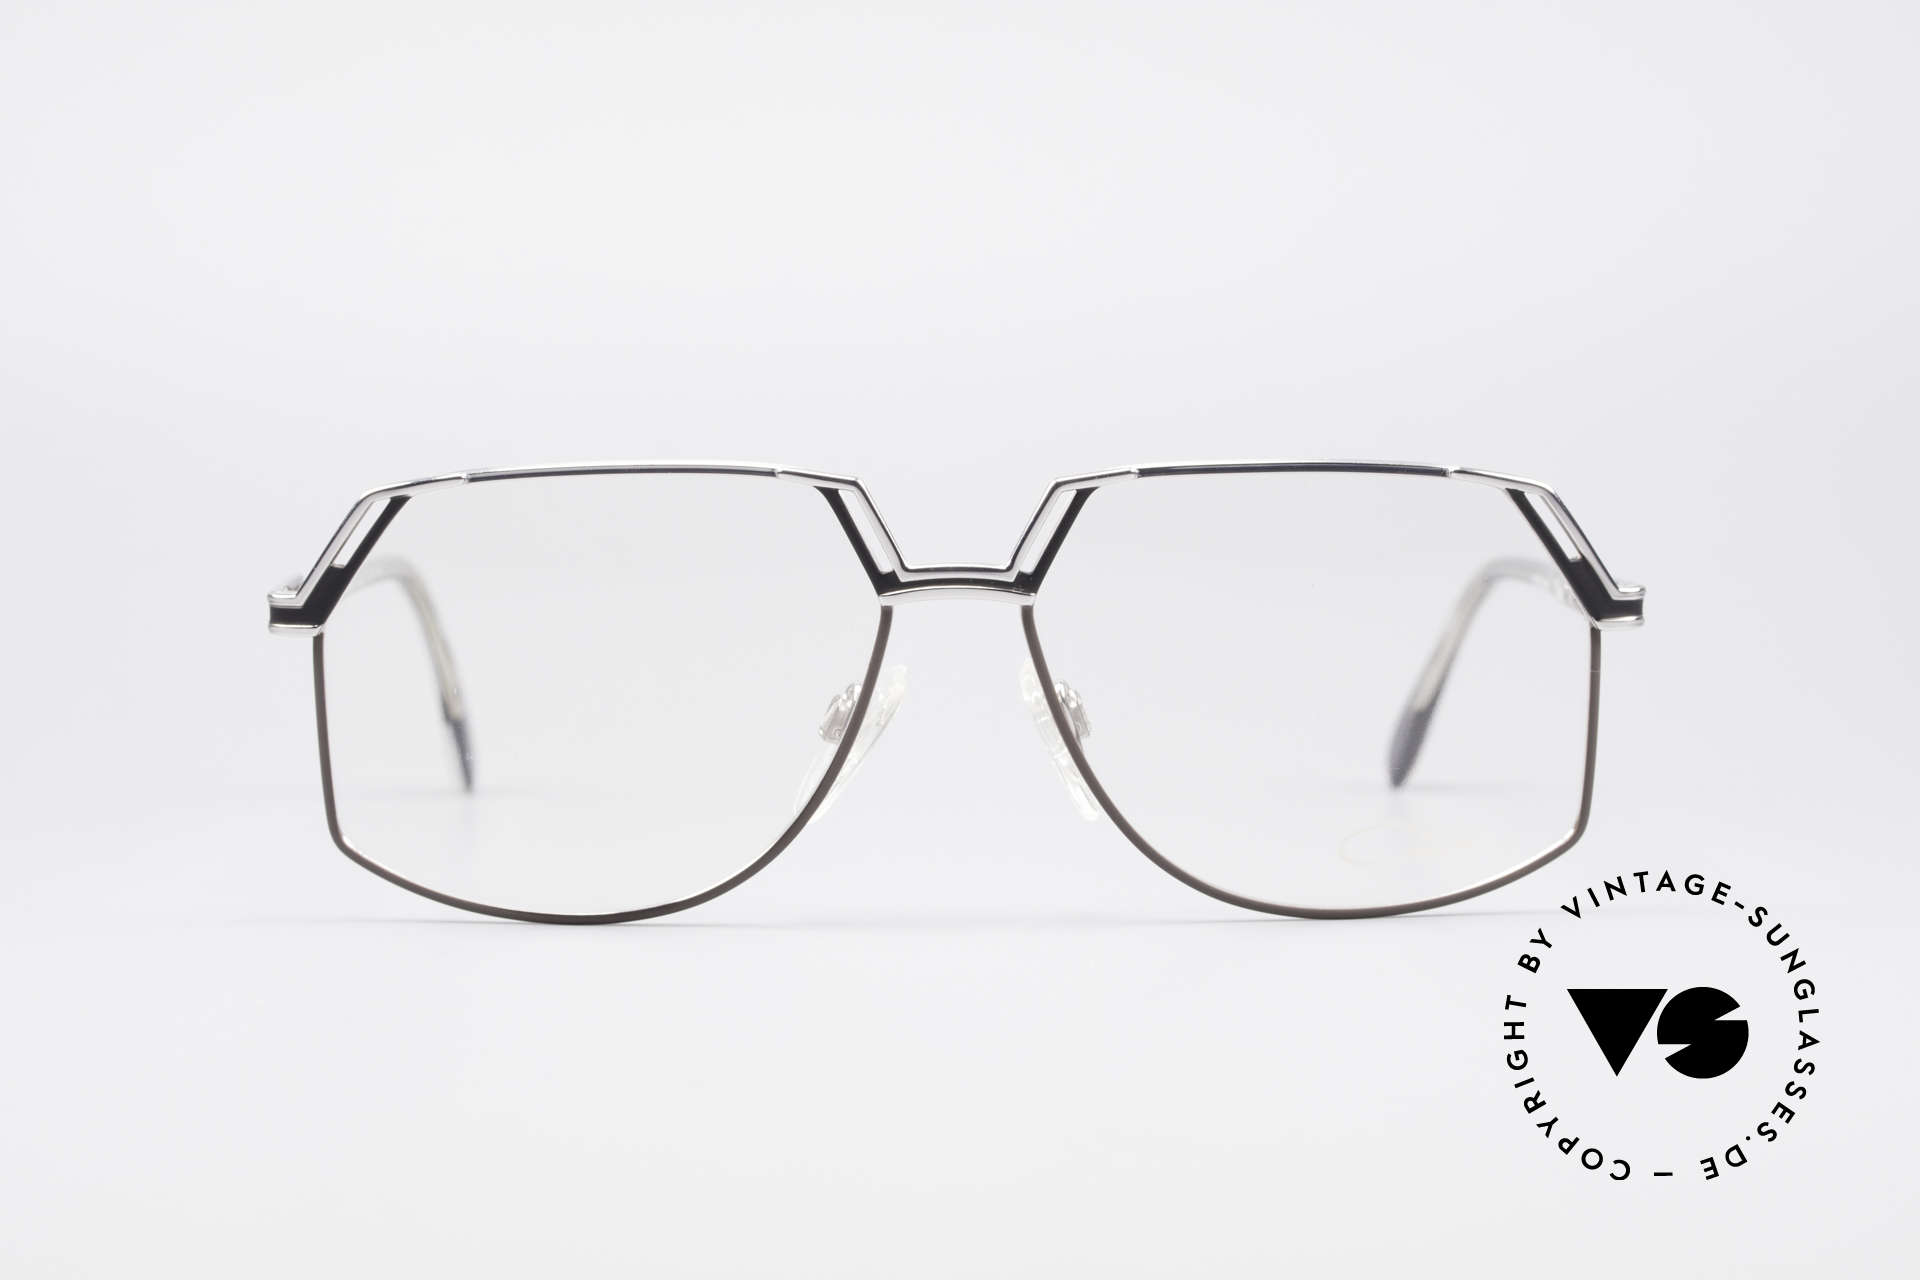 Cazal 738 True Vintage Eyeglasses, extraordinary frame design (really something different), Made for Men